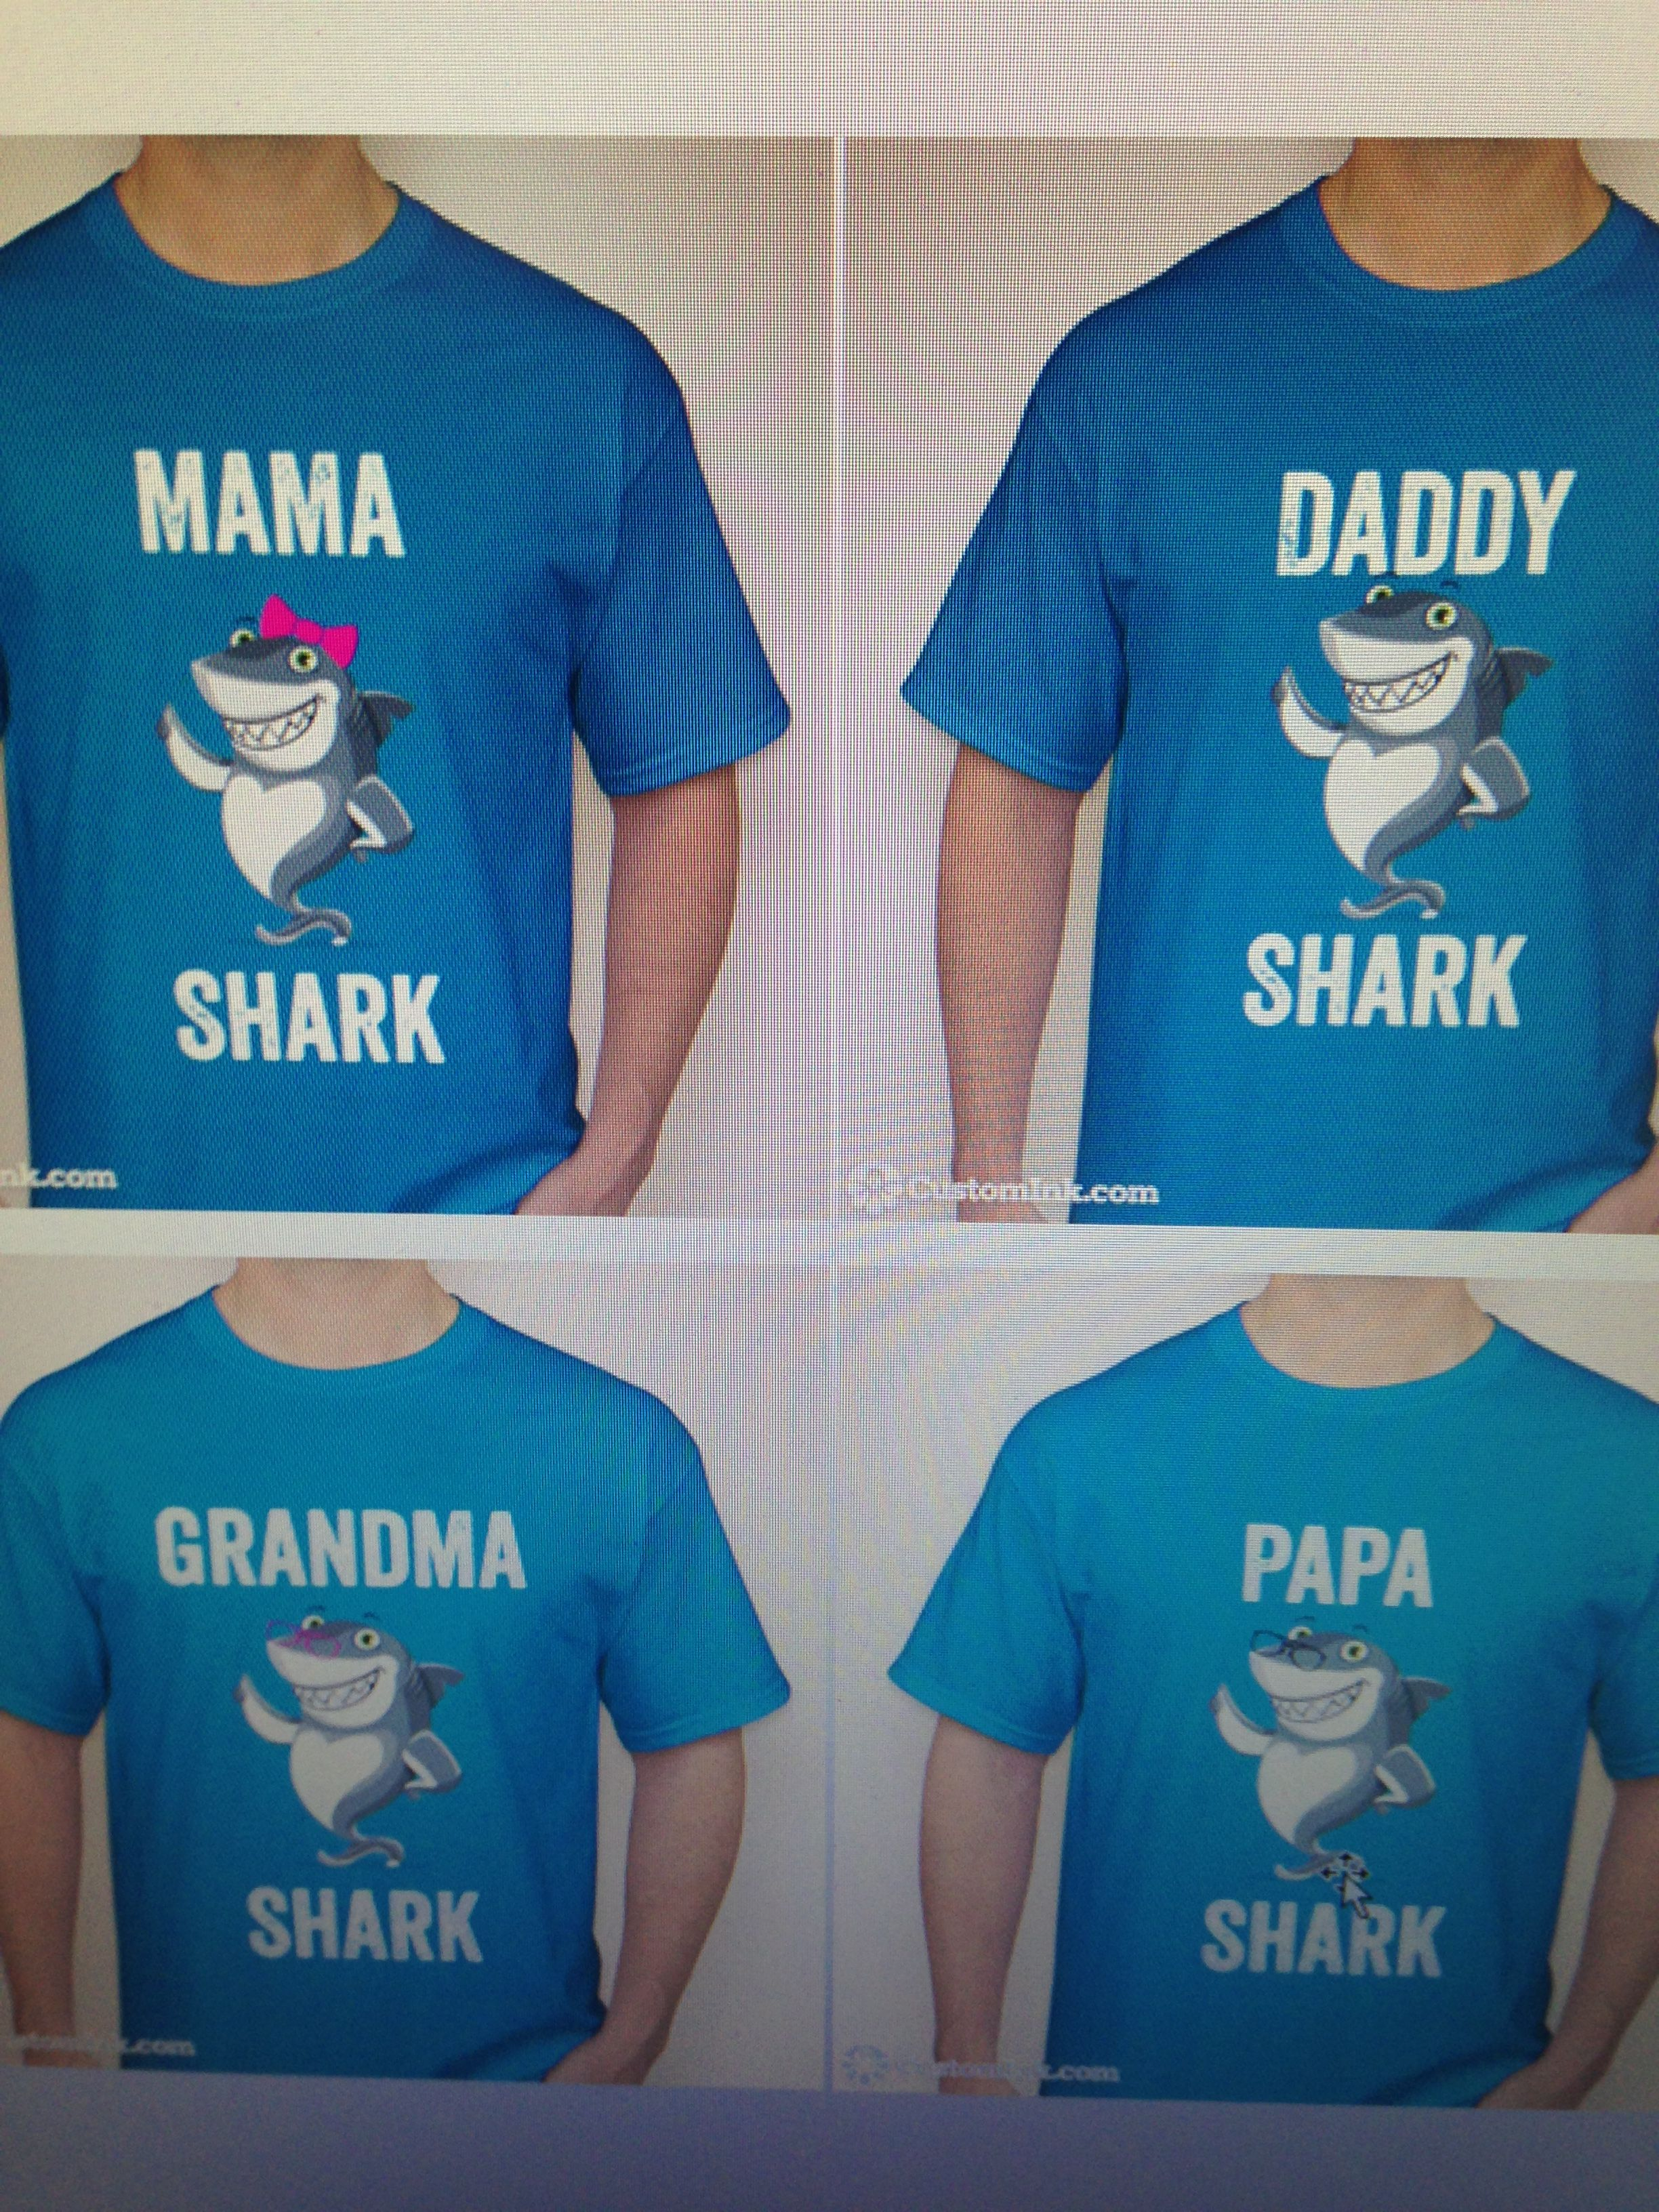 Shark family tee shirts online from Custom Ink for our son s 3rd birthday  shark party. Approx  25 each. 4c9ec678e